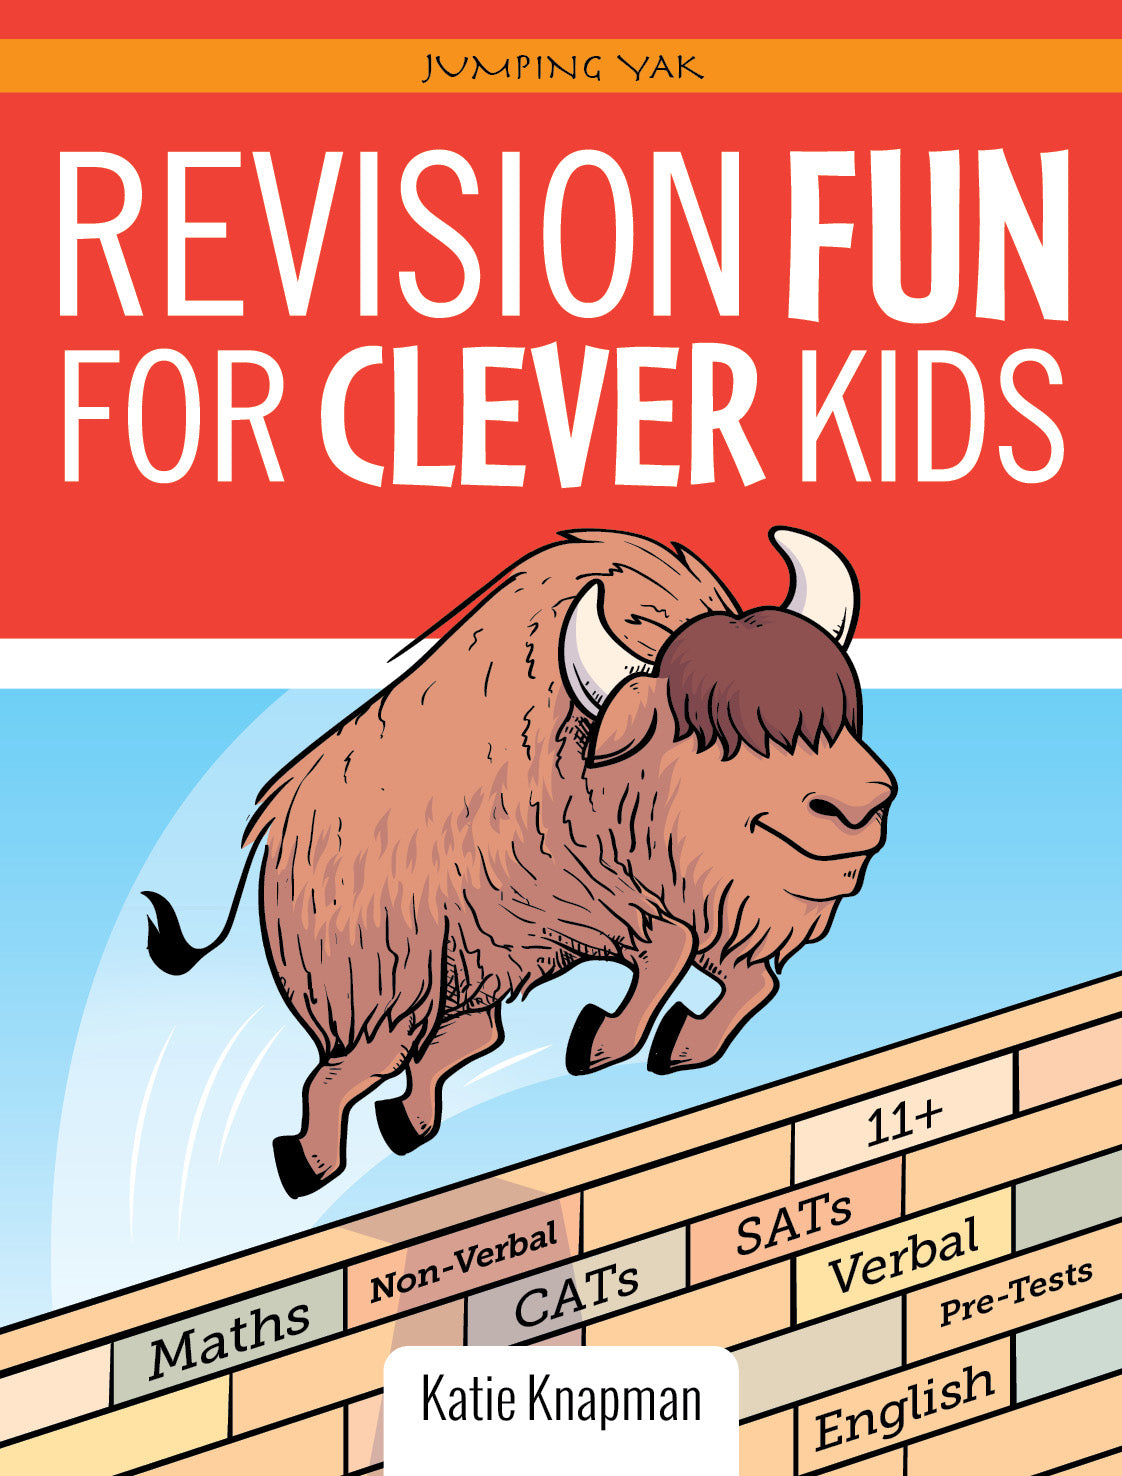 REVISION FUN FOR CLEVER KIDS